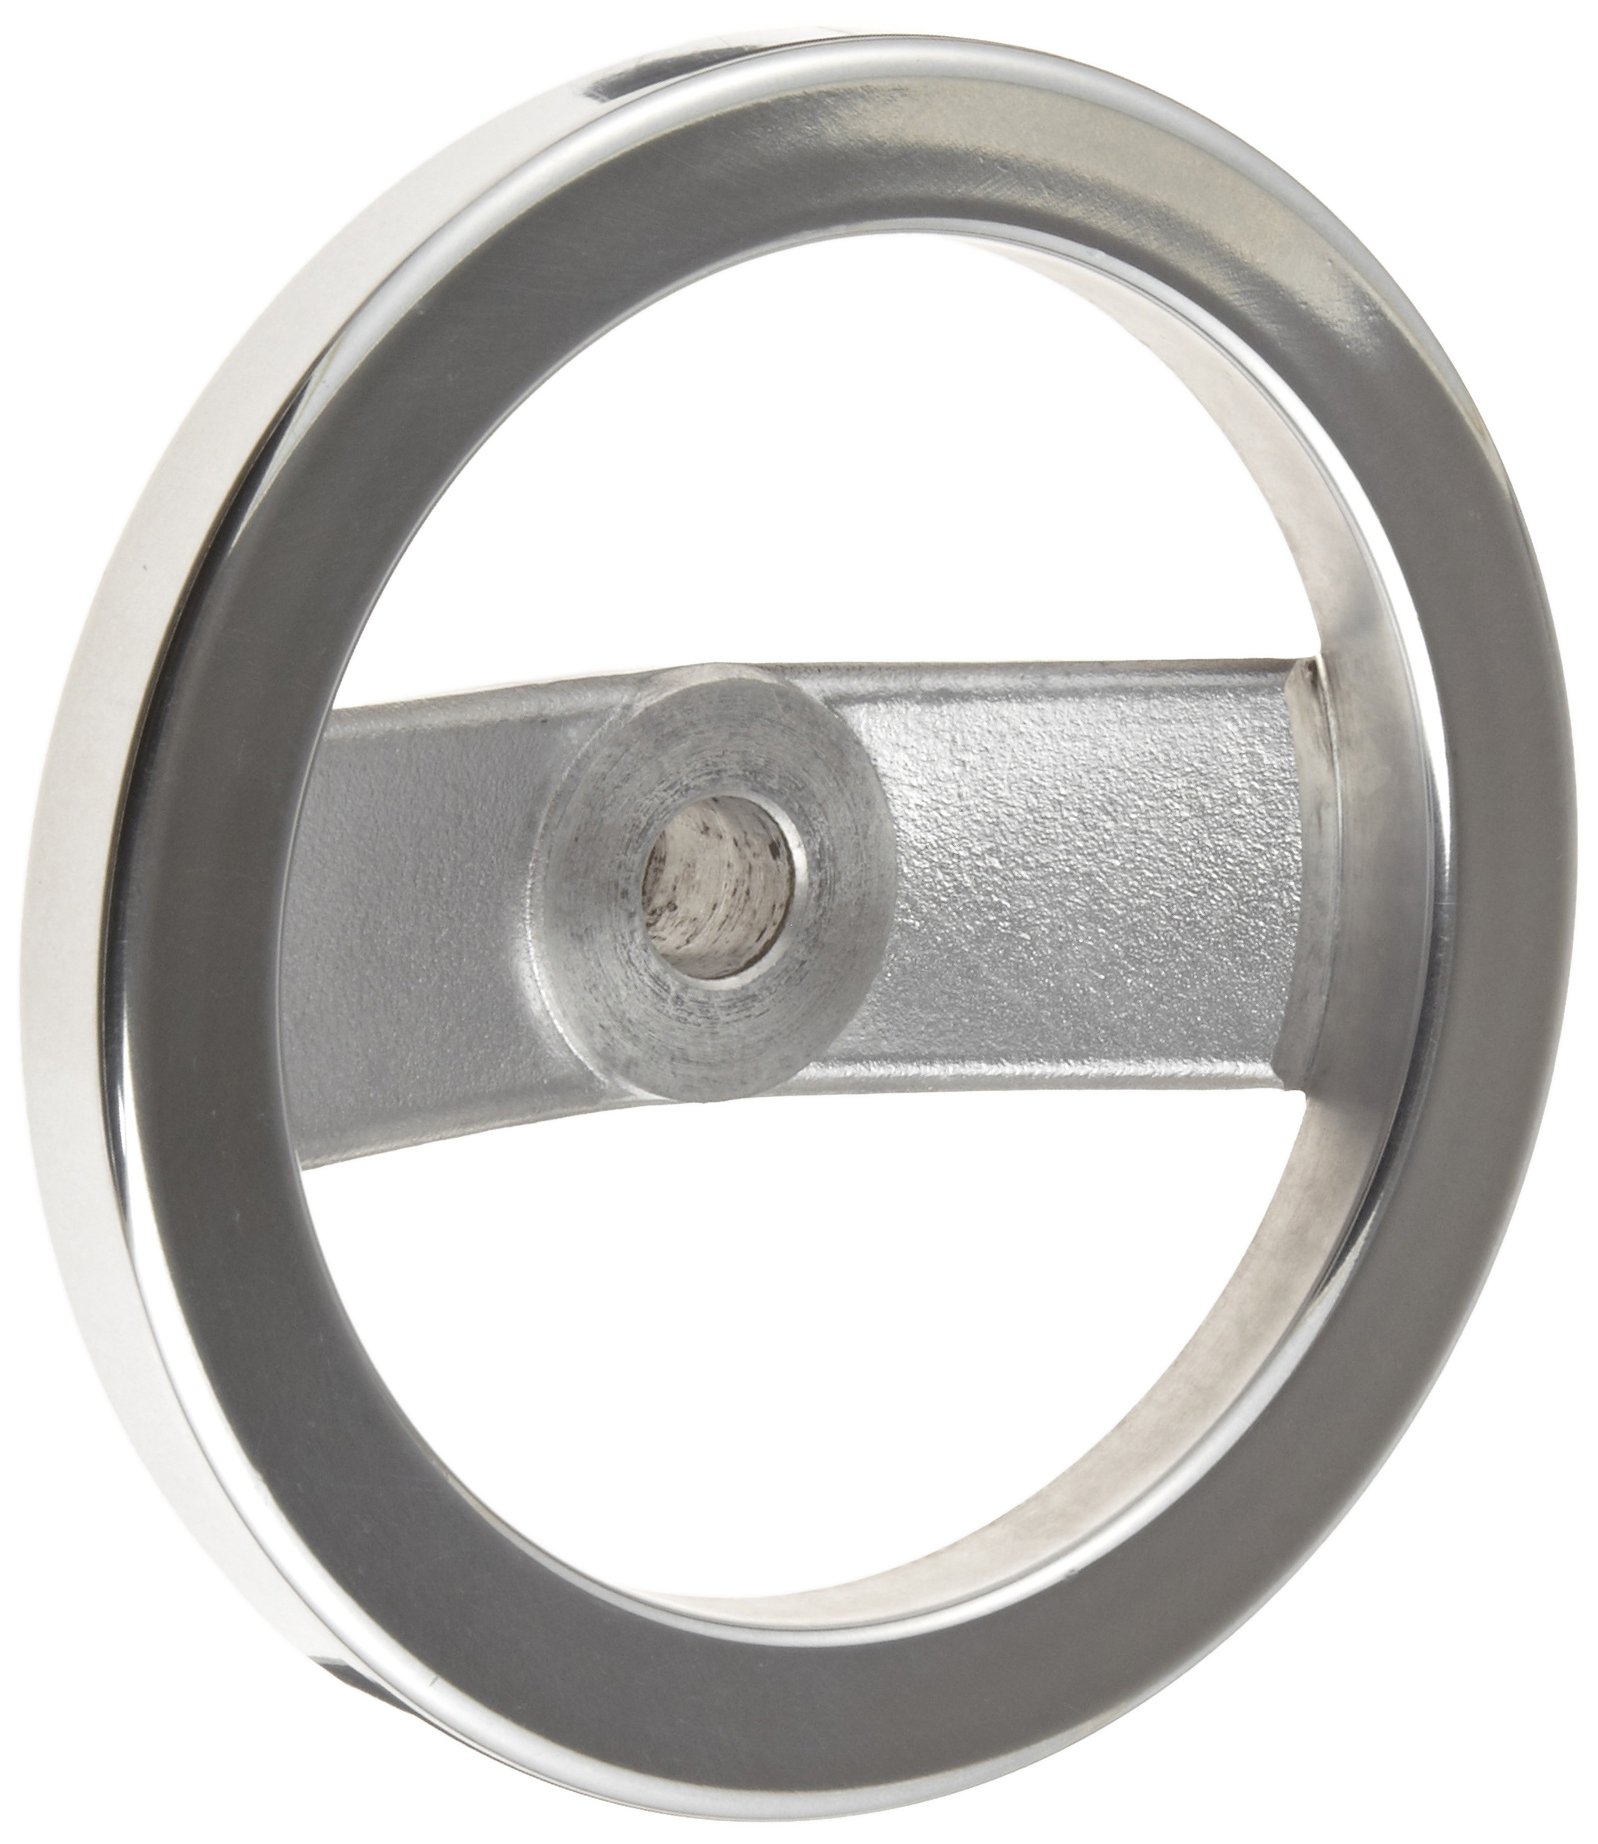 2 Spoked Polished Aluminum Dished Hand Wheel without Handle, 6'' Diameter, 5/8'' Hole Diameter, (Pack of 1)